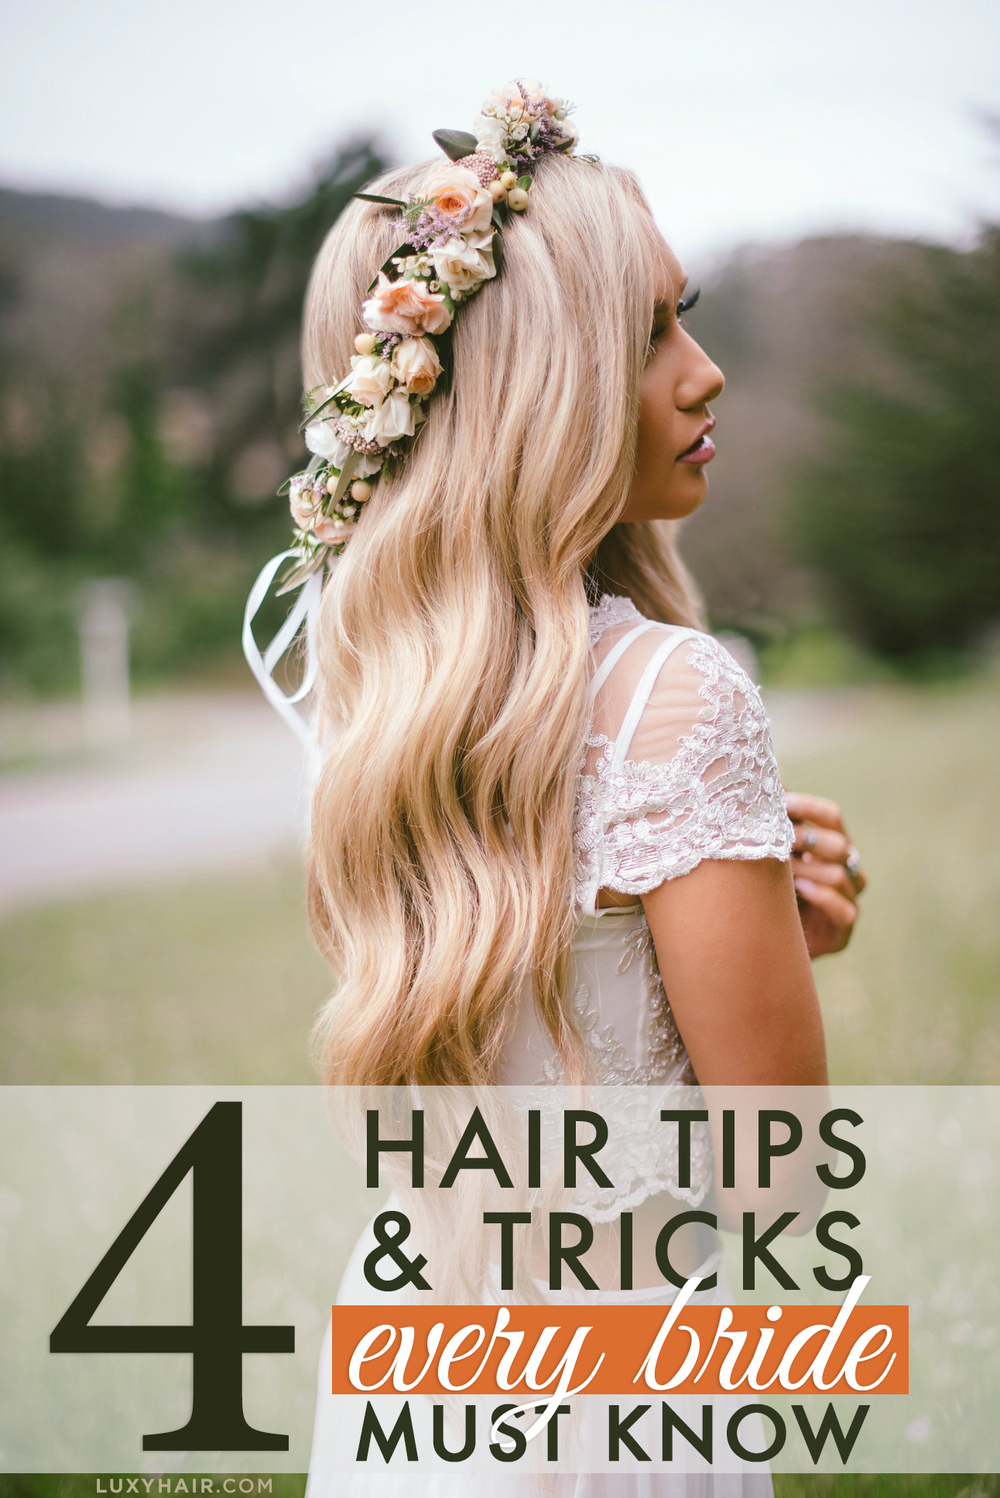 4 wedding hair tips and tricks every bride must know luxy hair 4 wedding hair tips and tricks every bride must know junglespirit Image collections